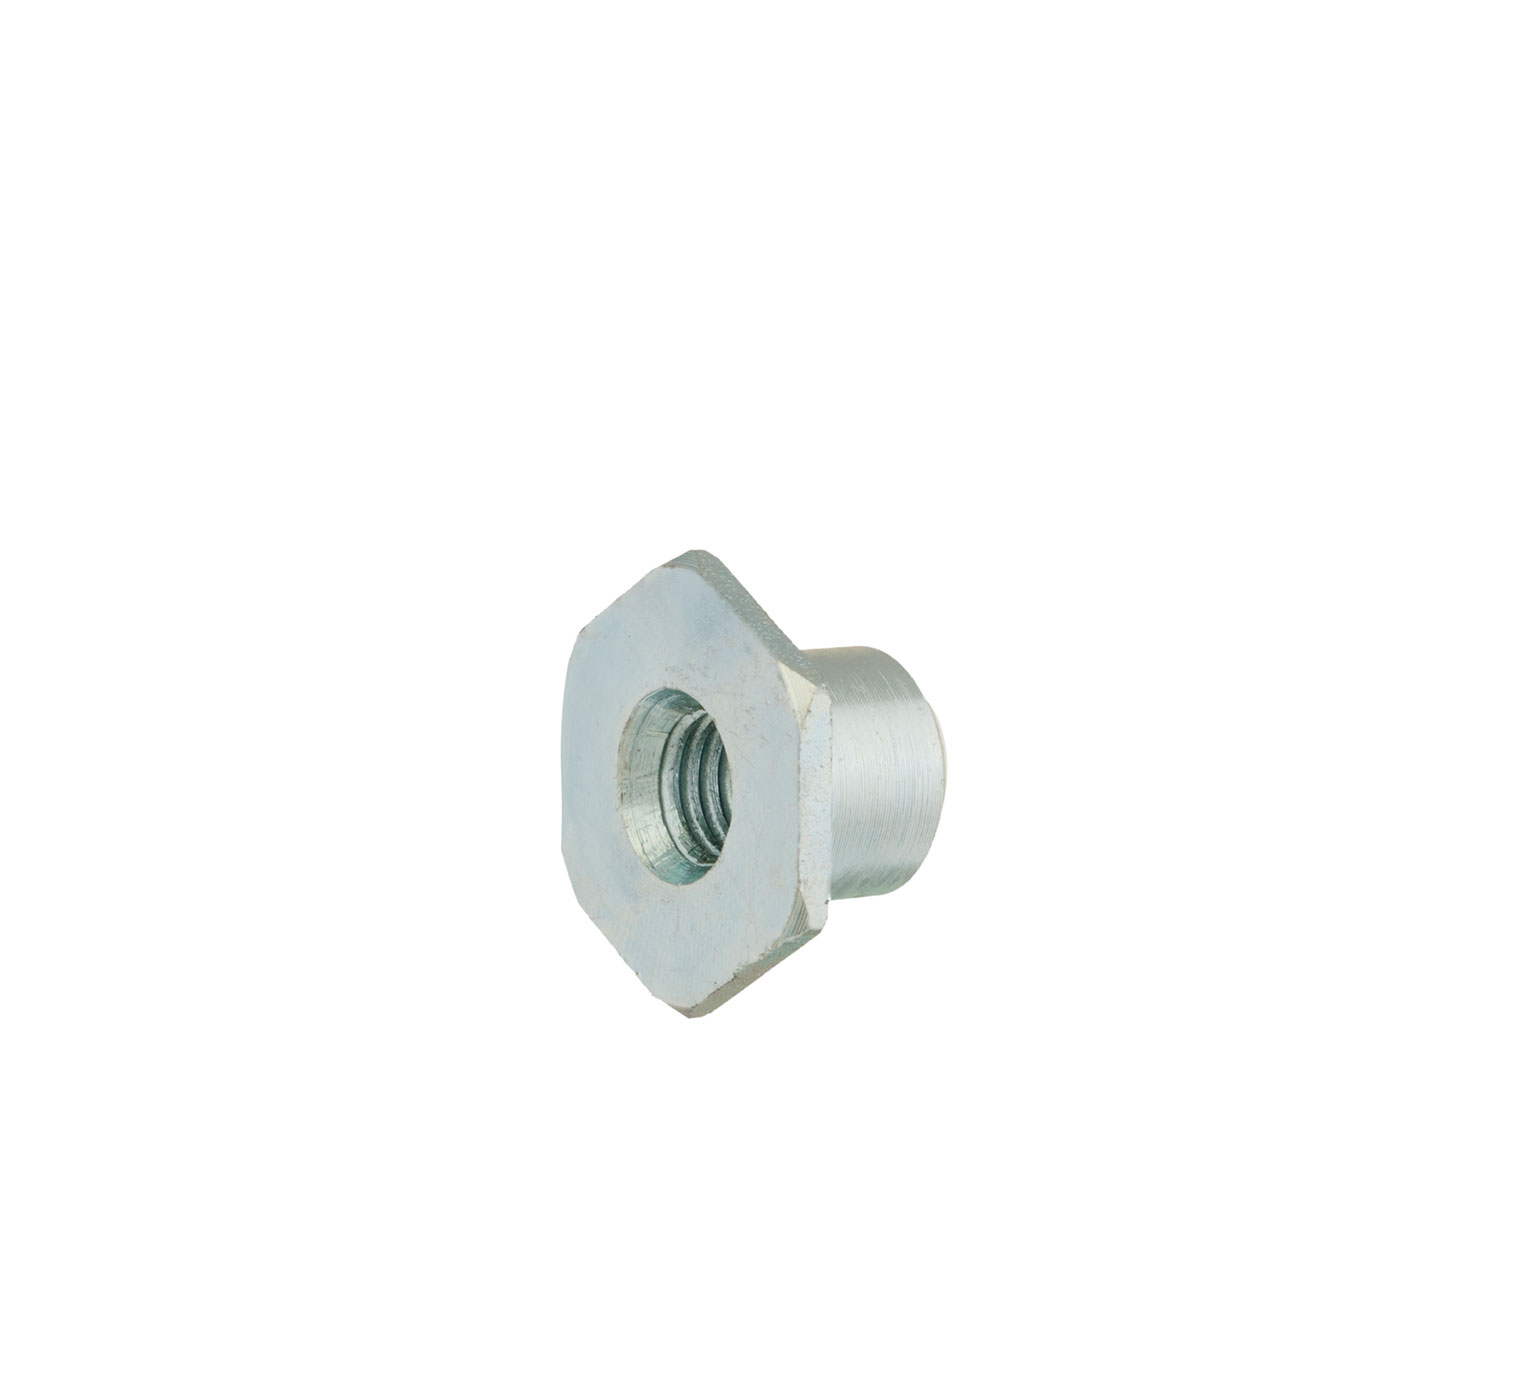 1022846 Steel Nut - 1 x 0.61 in alt 1